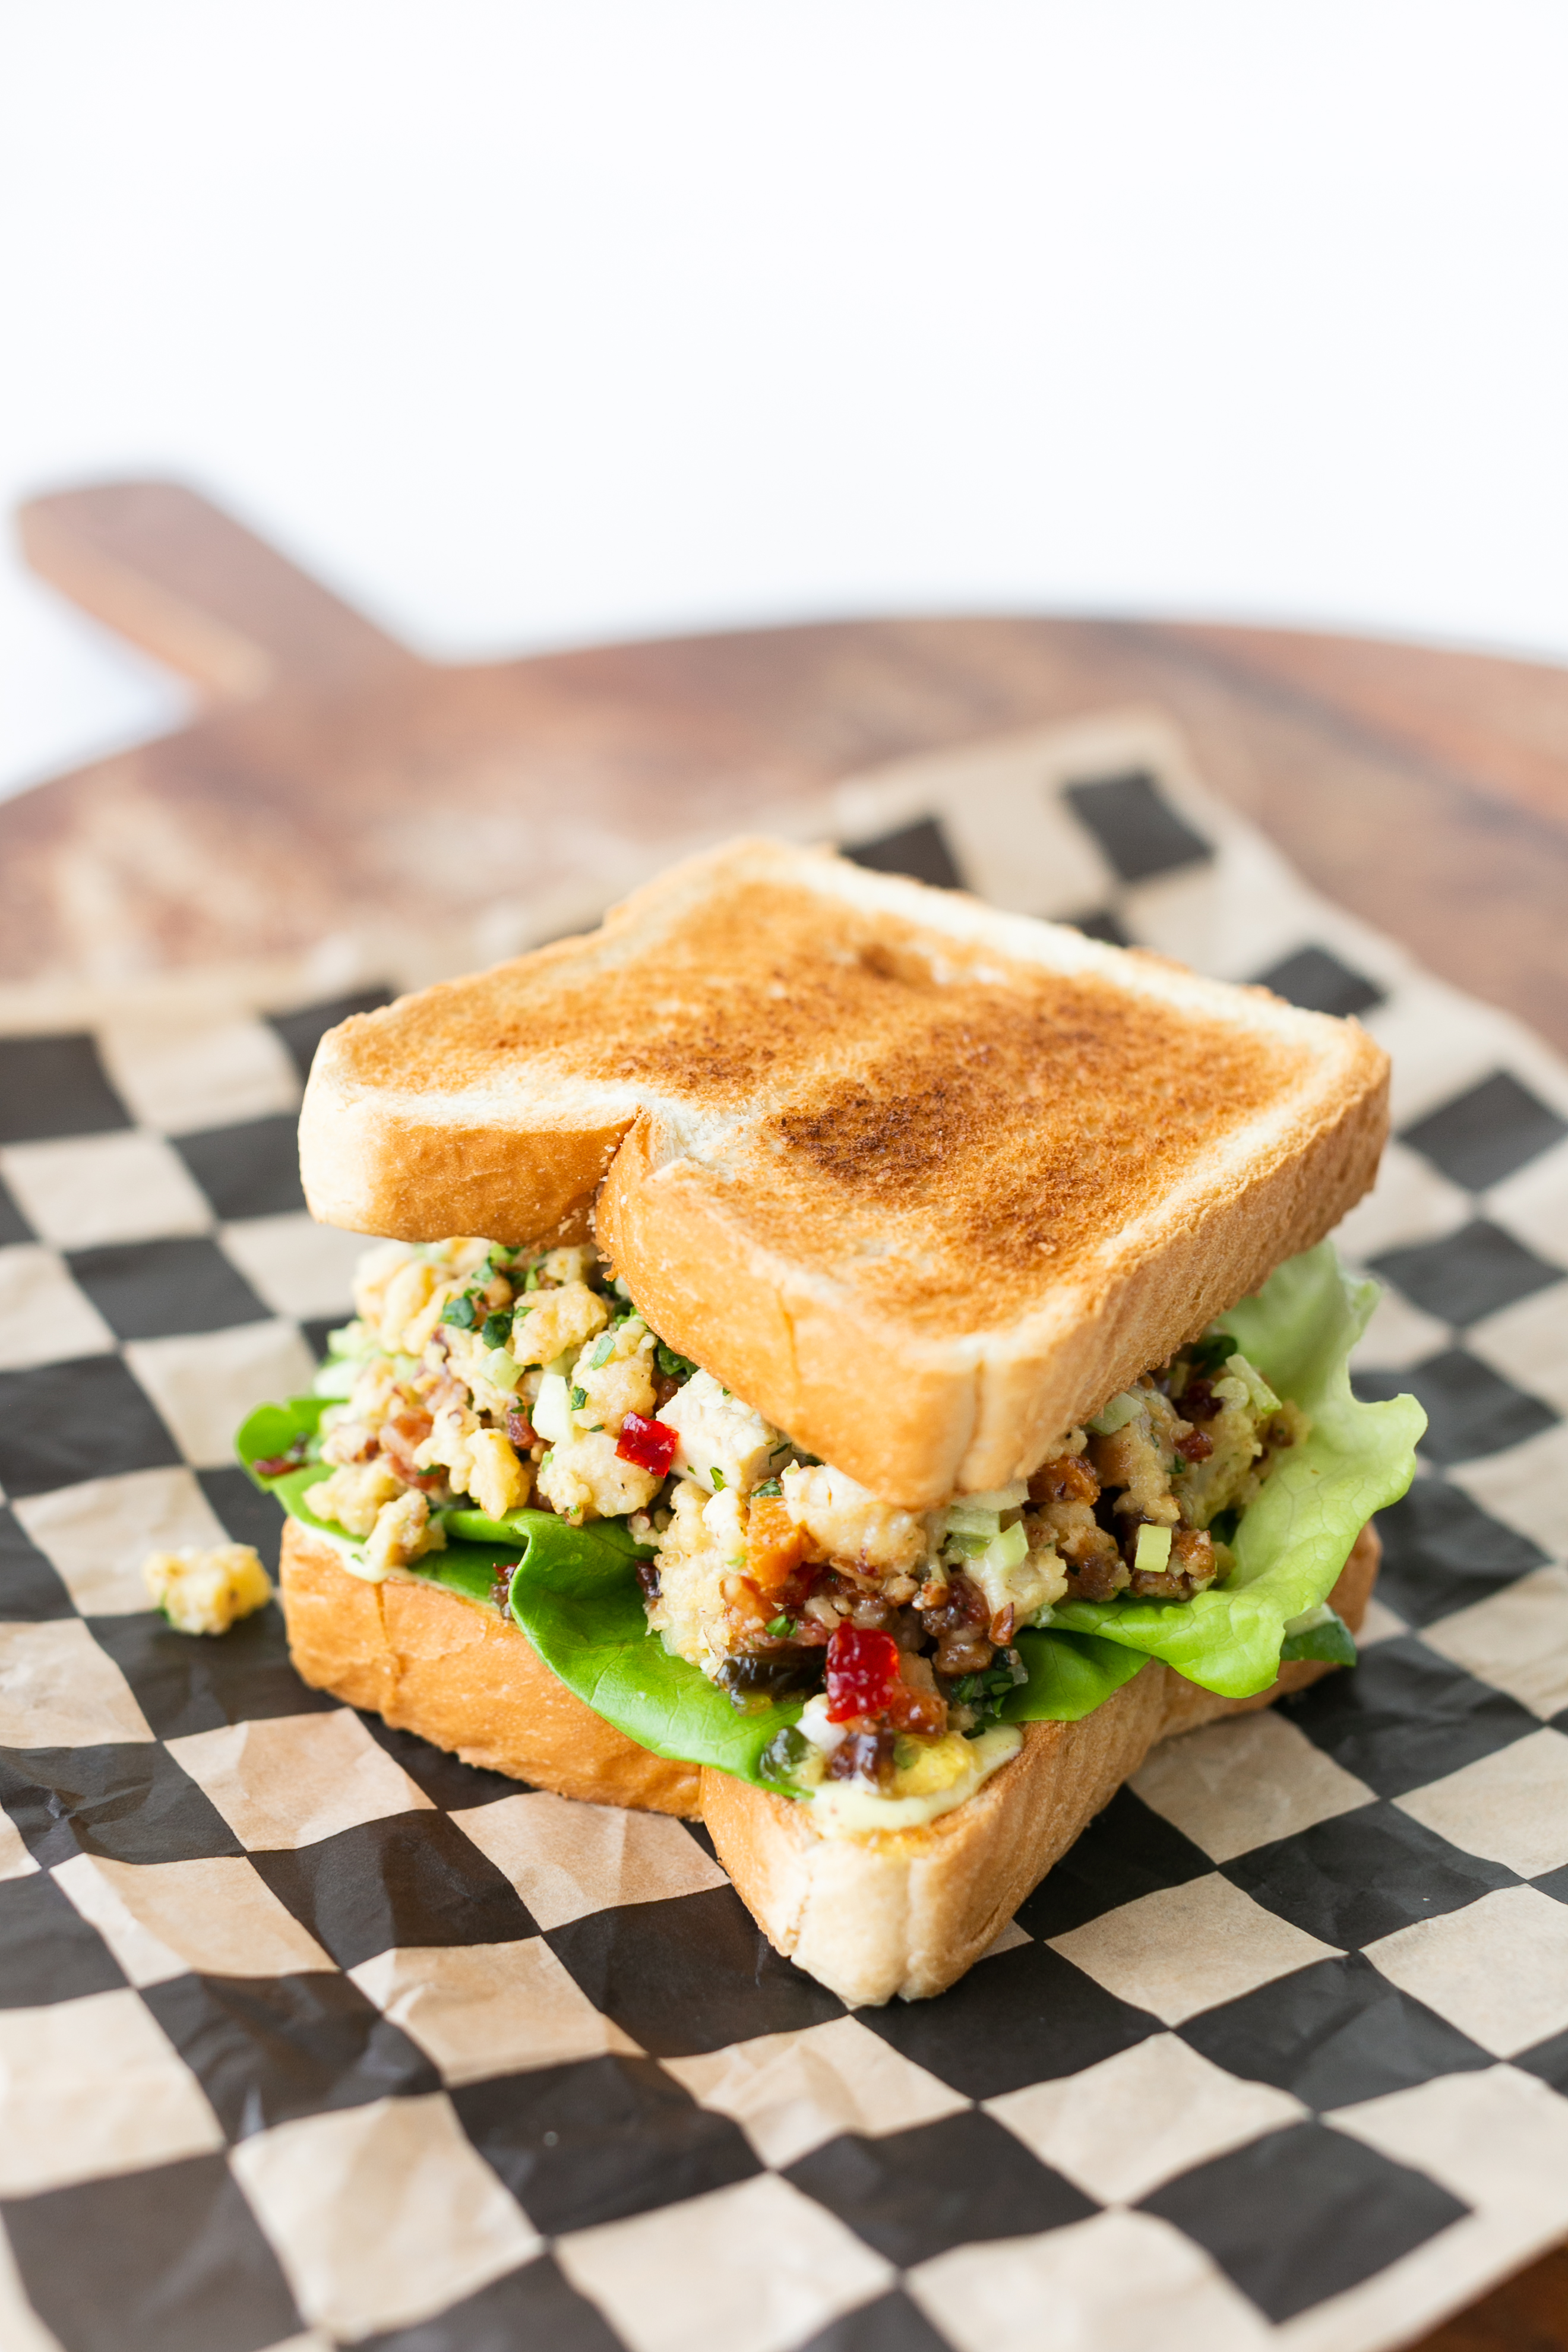 A sandwich with sliced white bread and chicken salad on top of a black-and-white checkered food wrapper liner